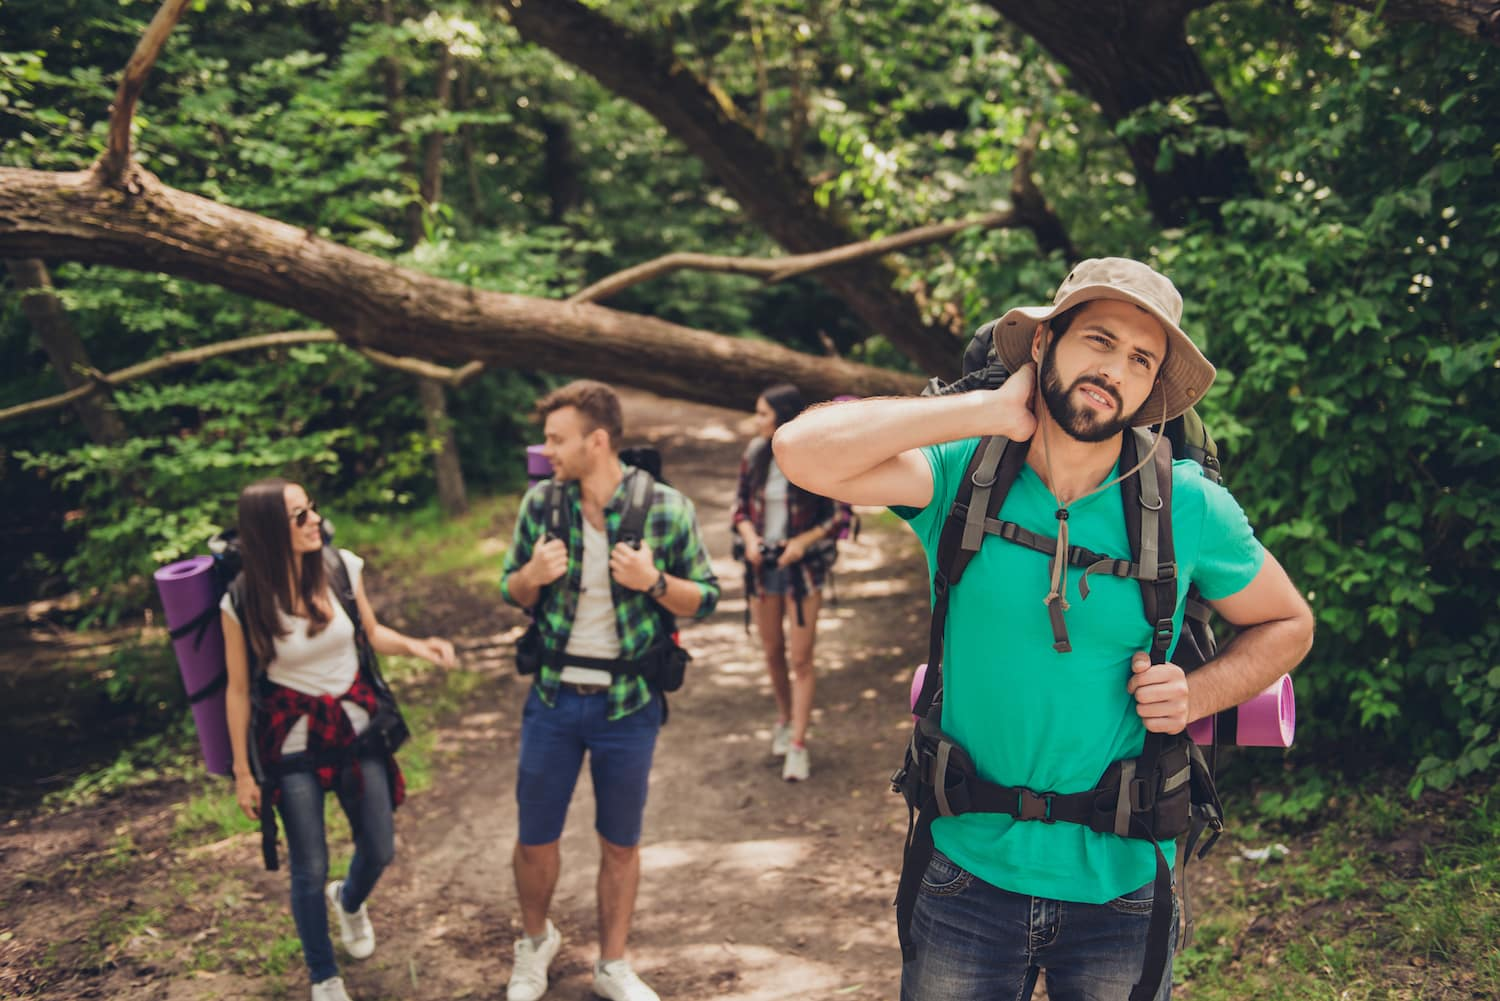 Hard, difficult, tiring and exhausting expedition of four friends in wild forest in trail. Guy is struggling of a neck pain, massaging it (Hard, difficult, tiring and exhausting expedition of four friends in wild forest in trail. Guy is struggling of